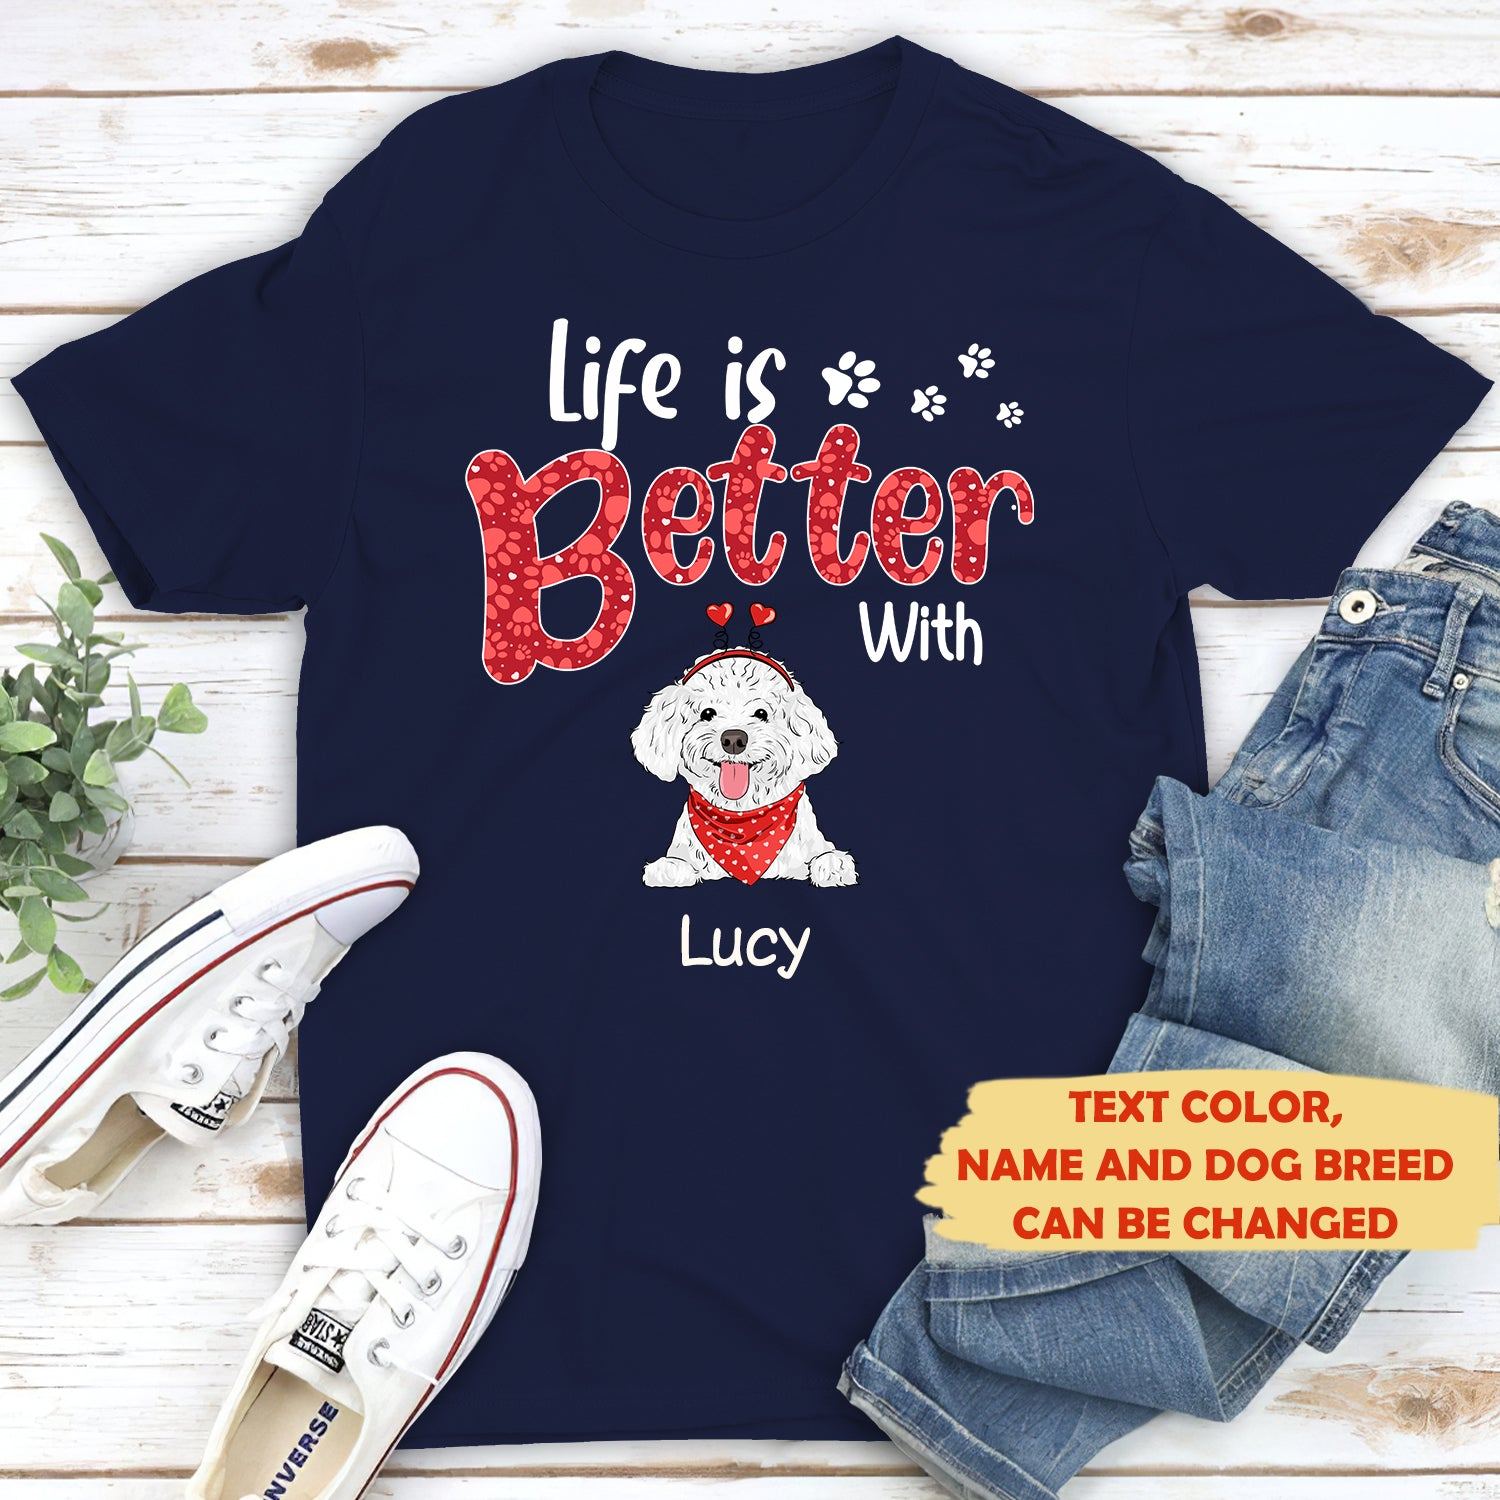 Life is better 2 - Personalized custom premium T-shirt